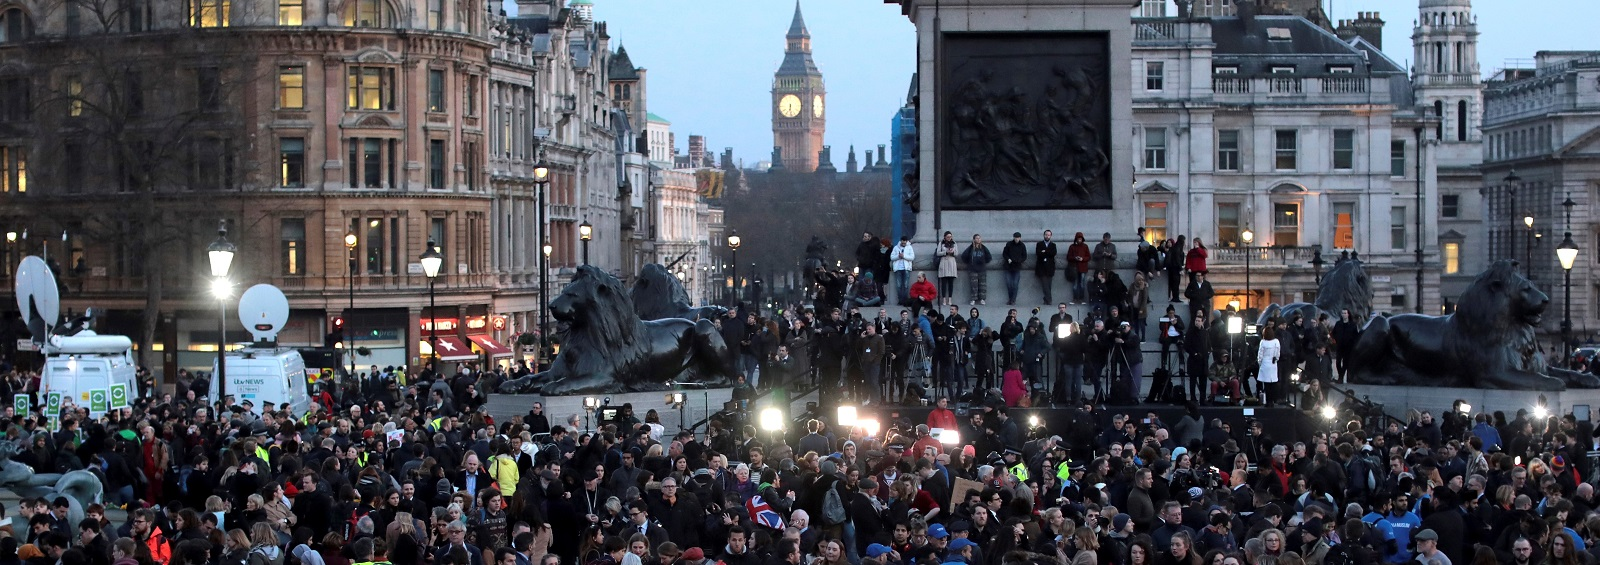 Candlelit vigil at Trafalgar Square on 23 March after terrorist attack in Westminster. (Photo: Jack Taylor/Getty)